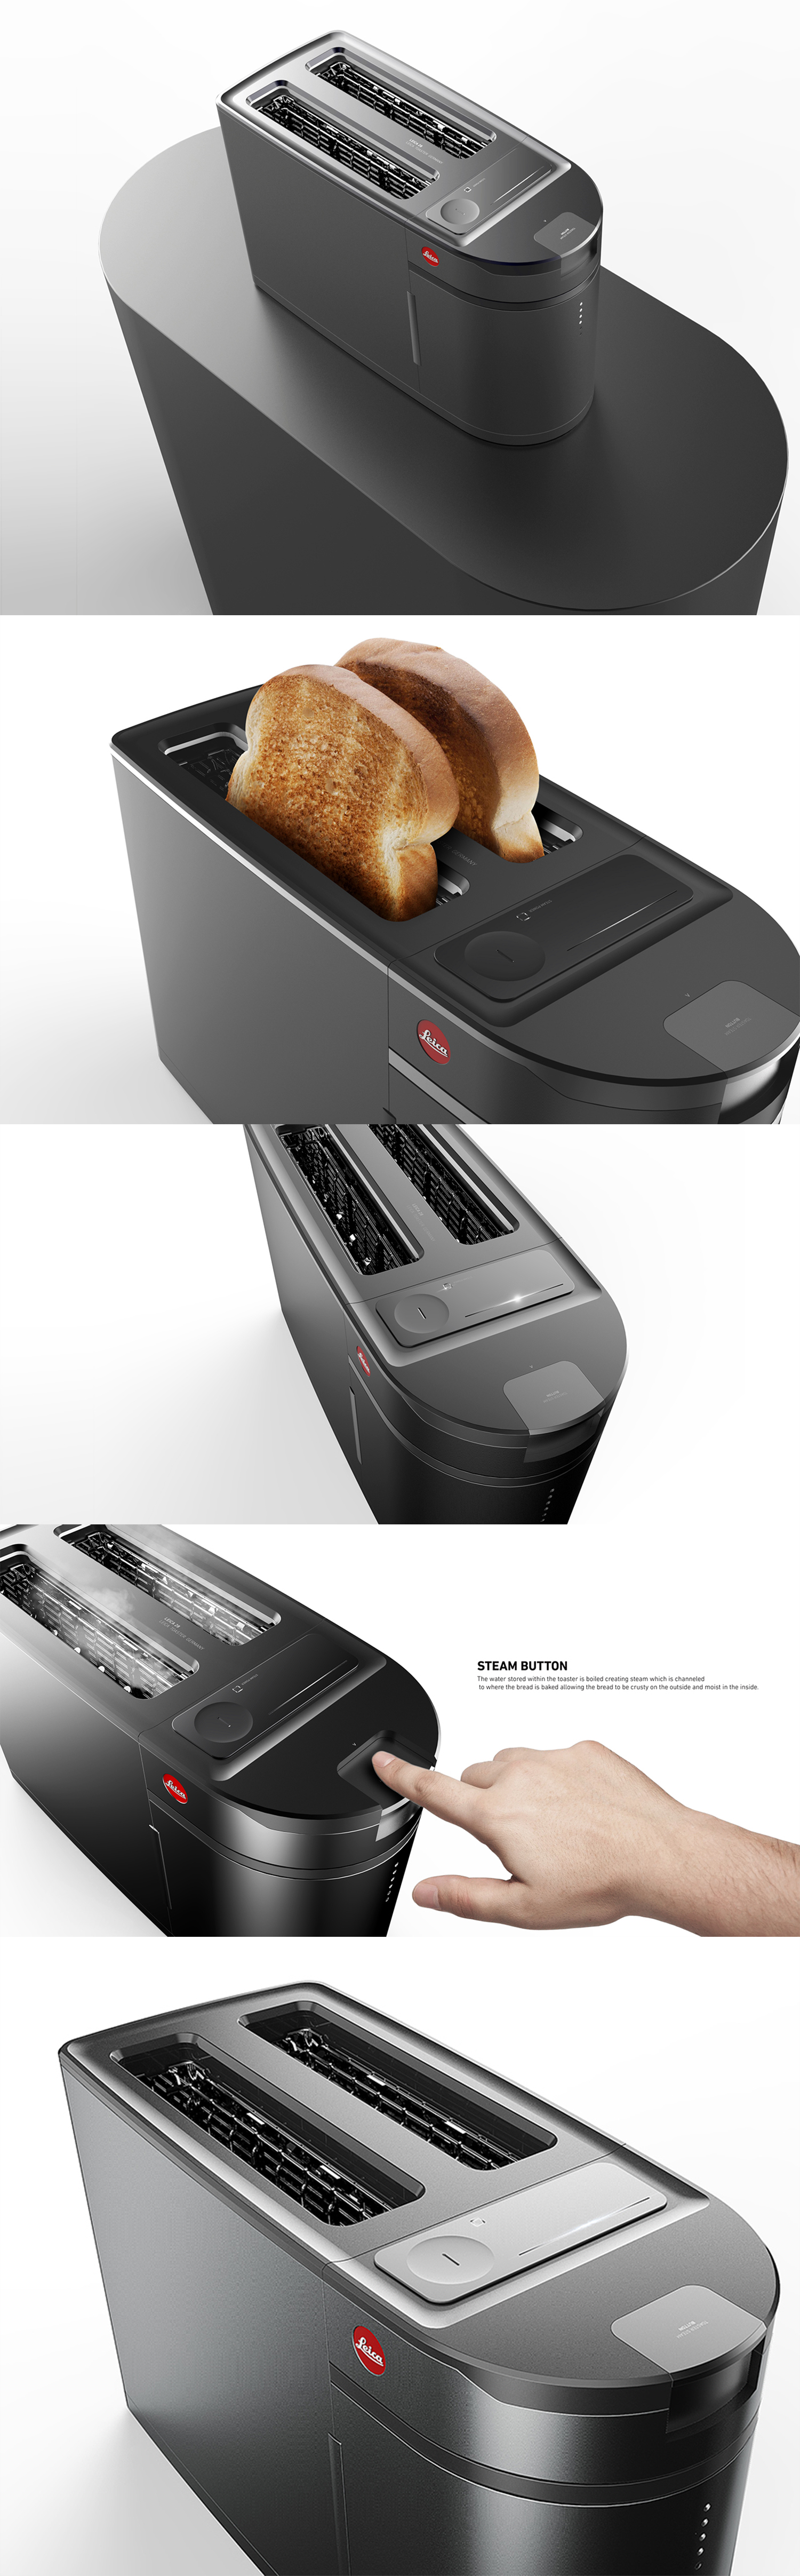 leica what by if pin industrial product design toaster designed